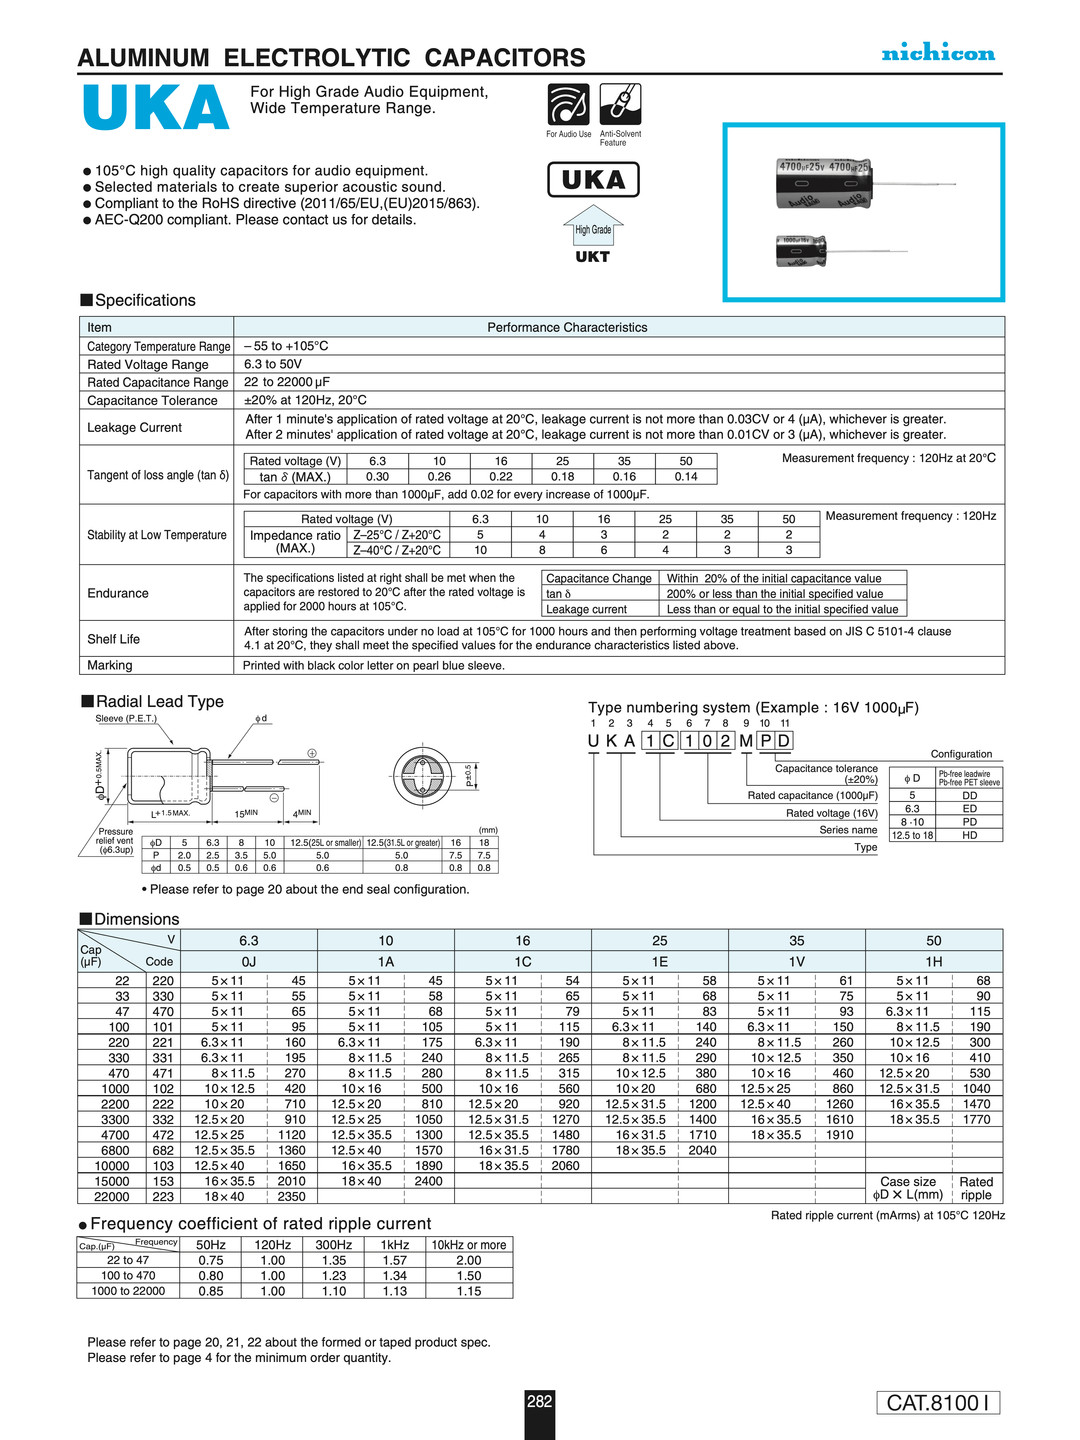 Nichicon UKA Series Capacitor Data Sheet